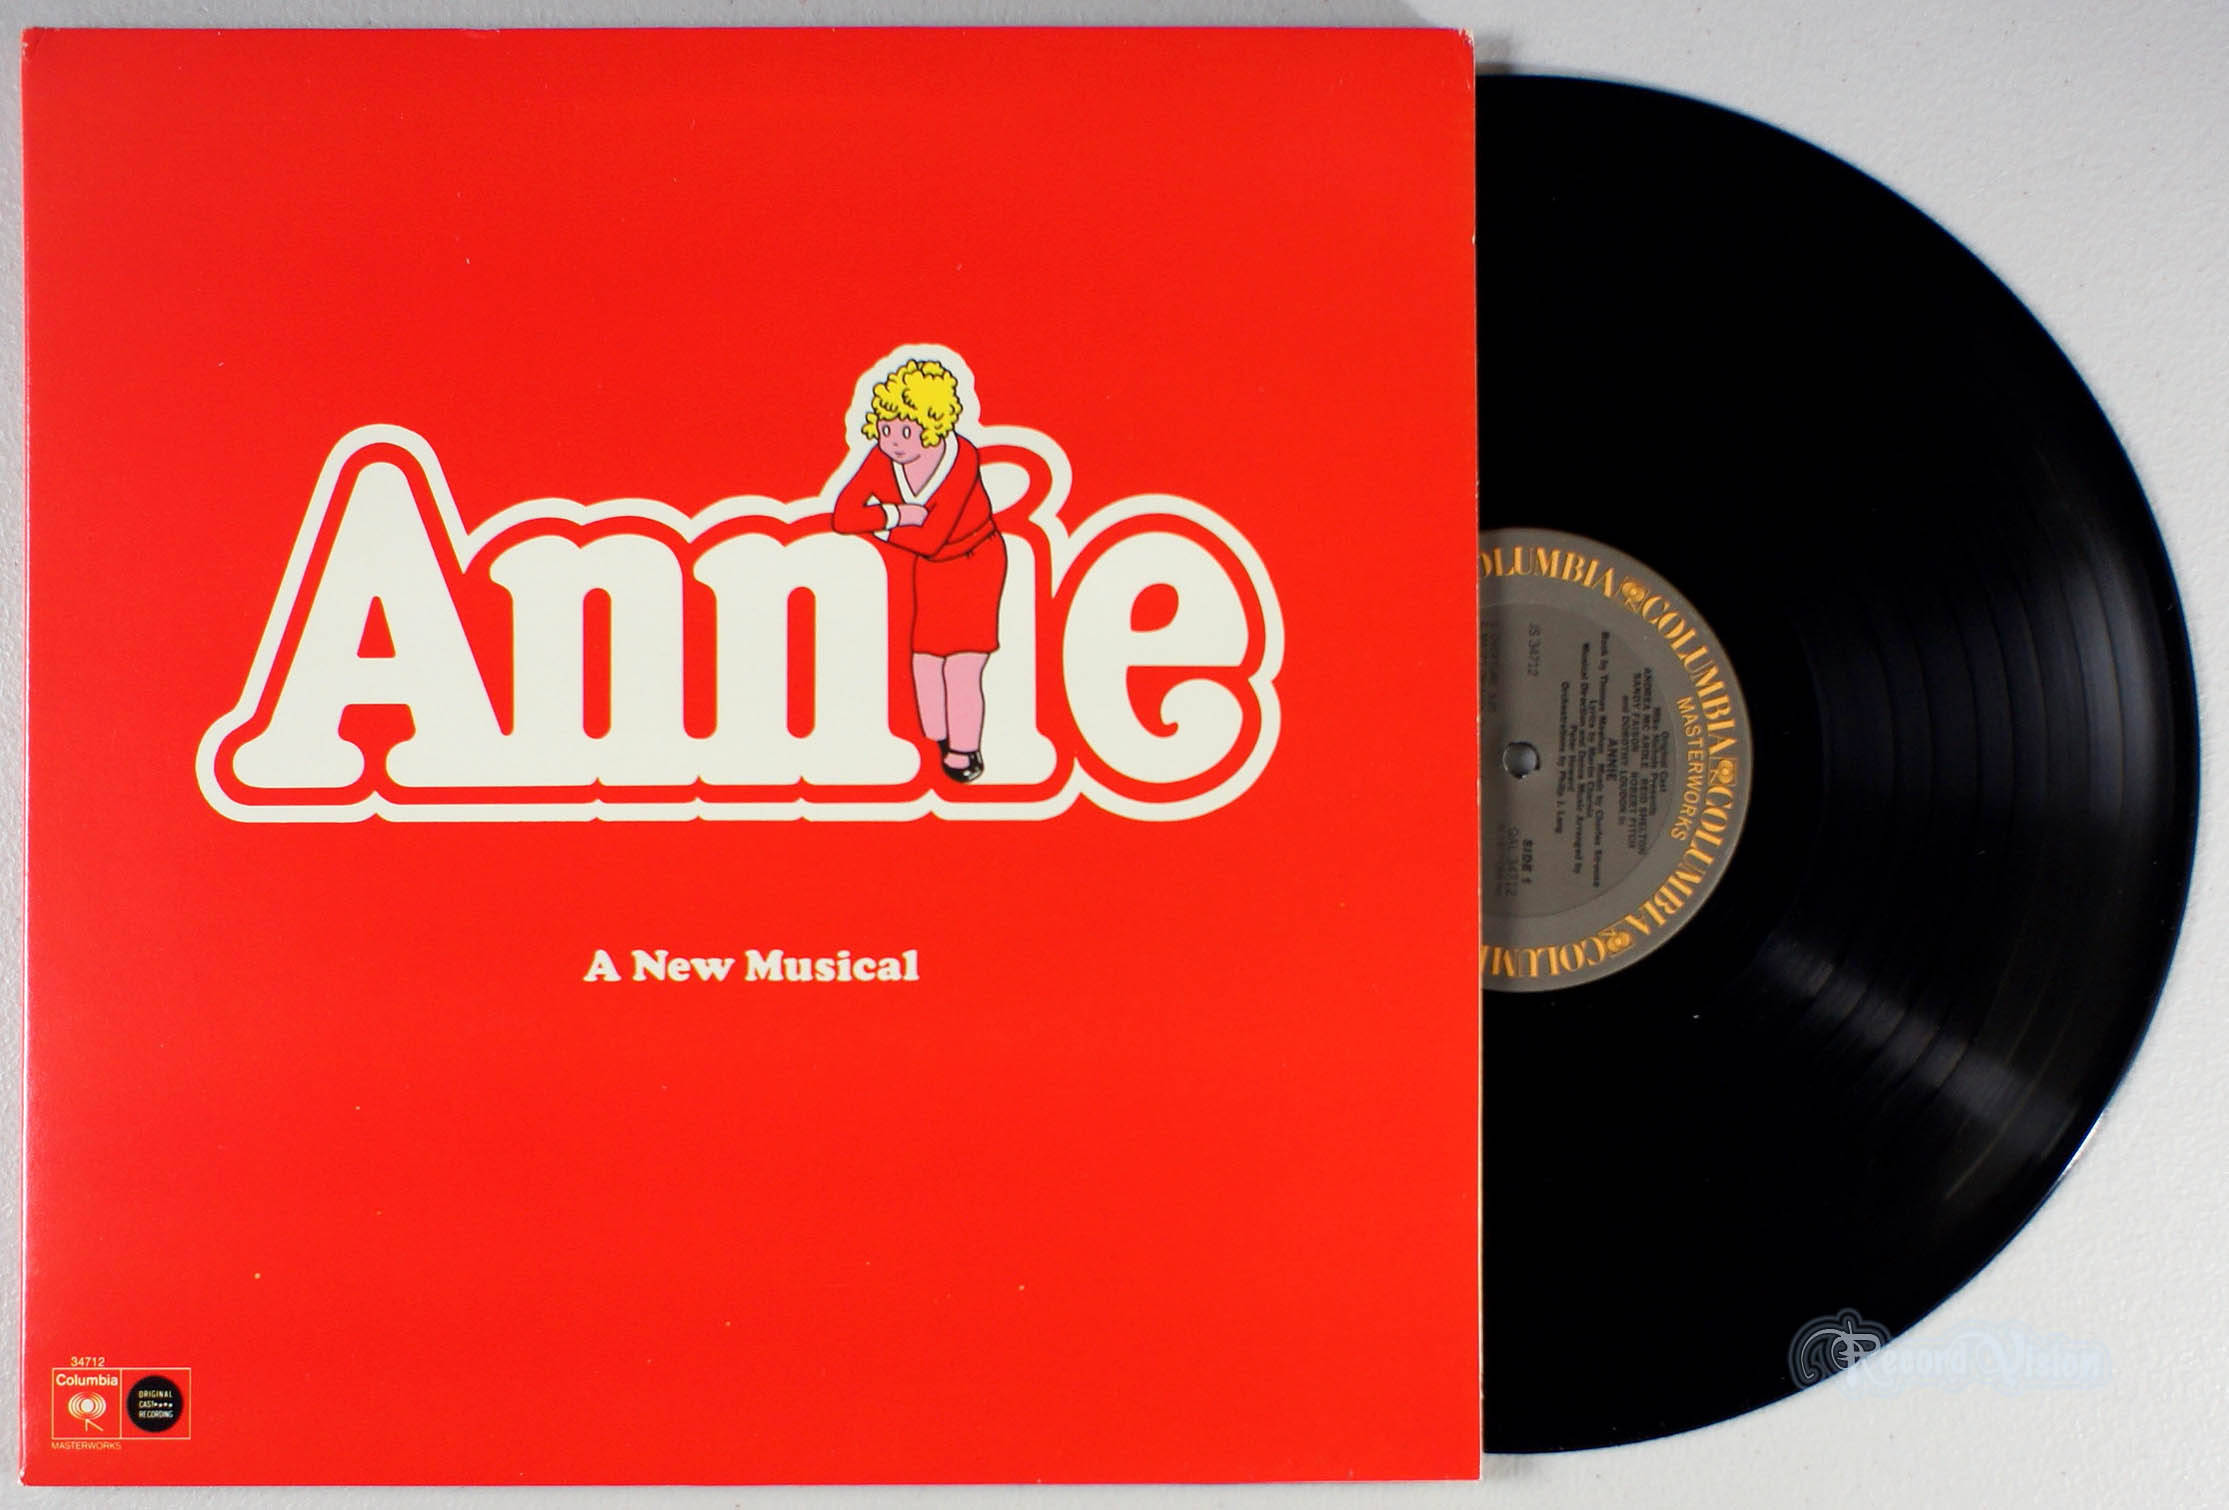 ASSORTED (SOUNDTRACK) - Annie (Broadway) - 33T